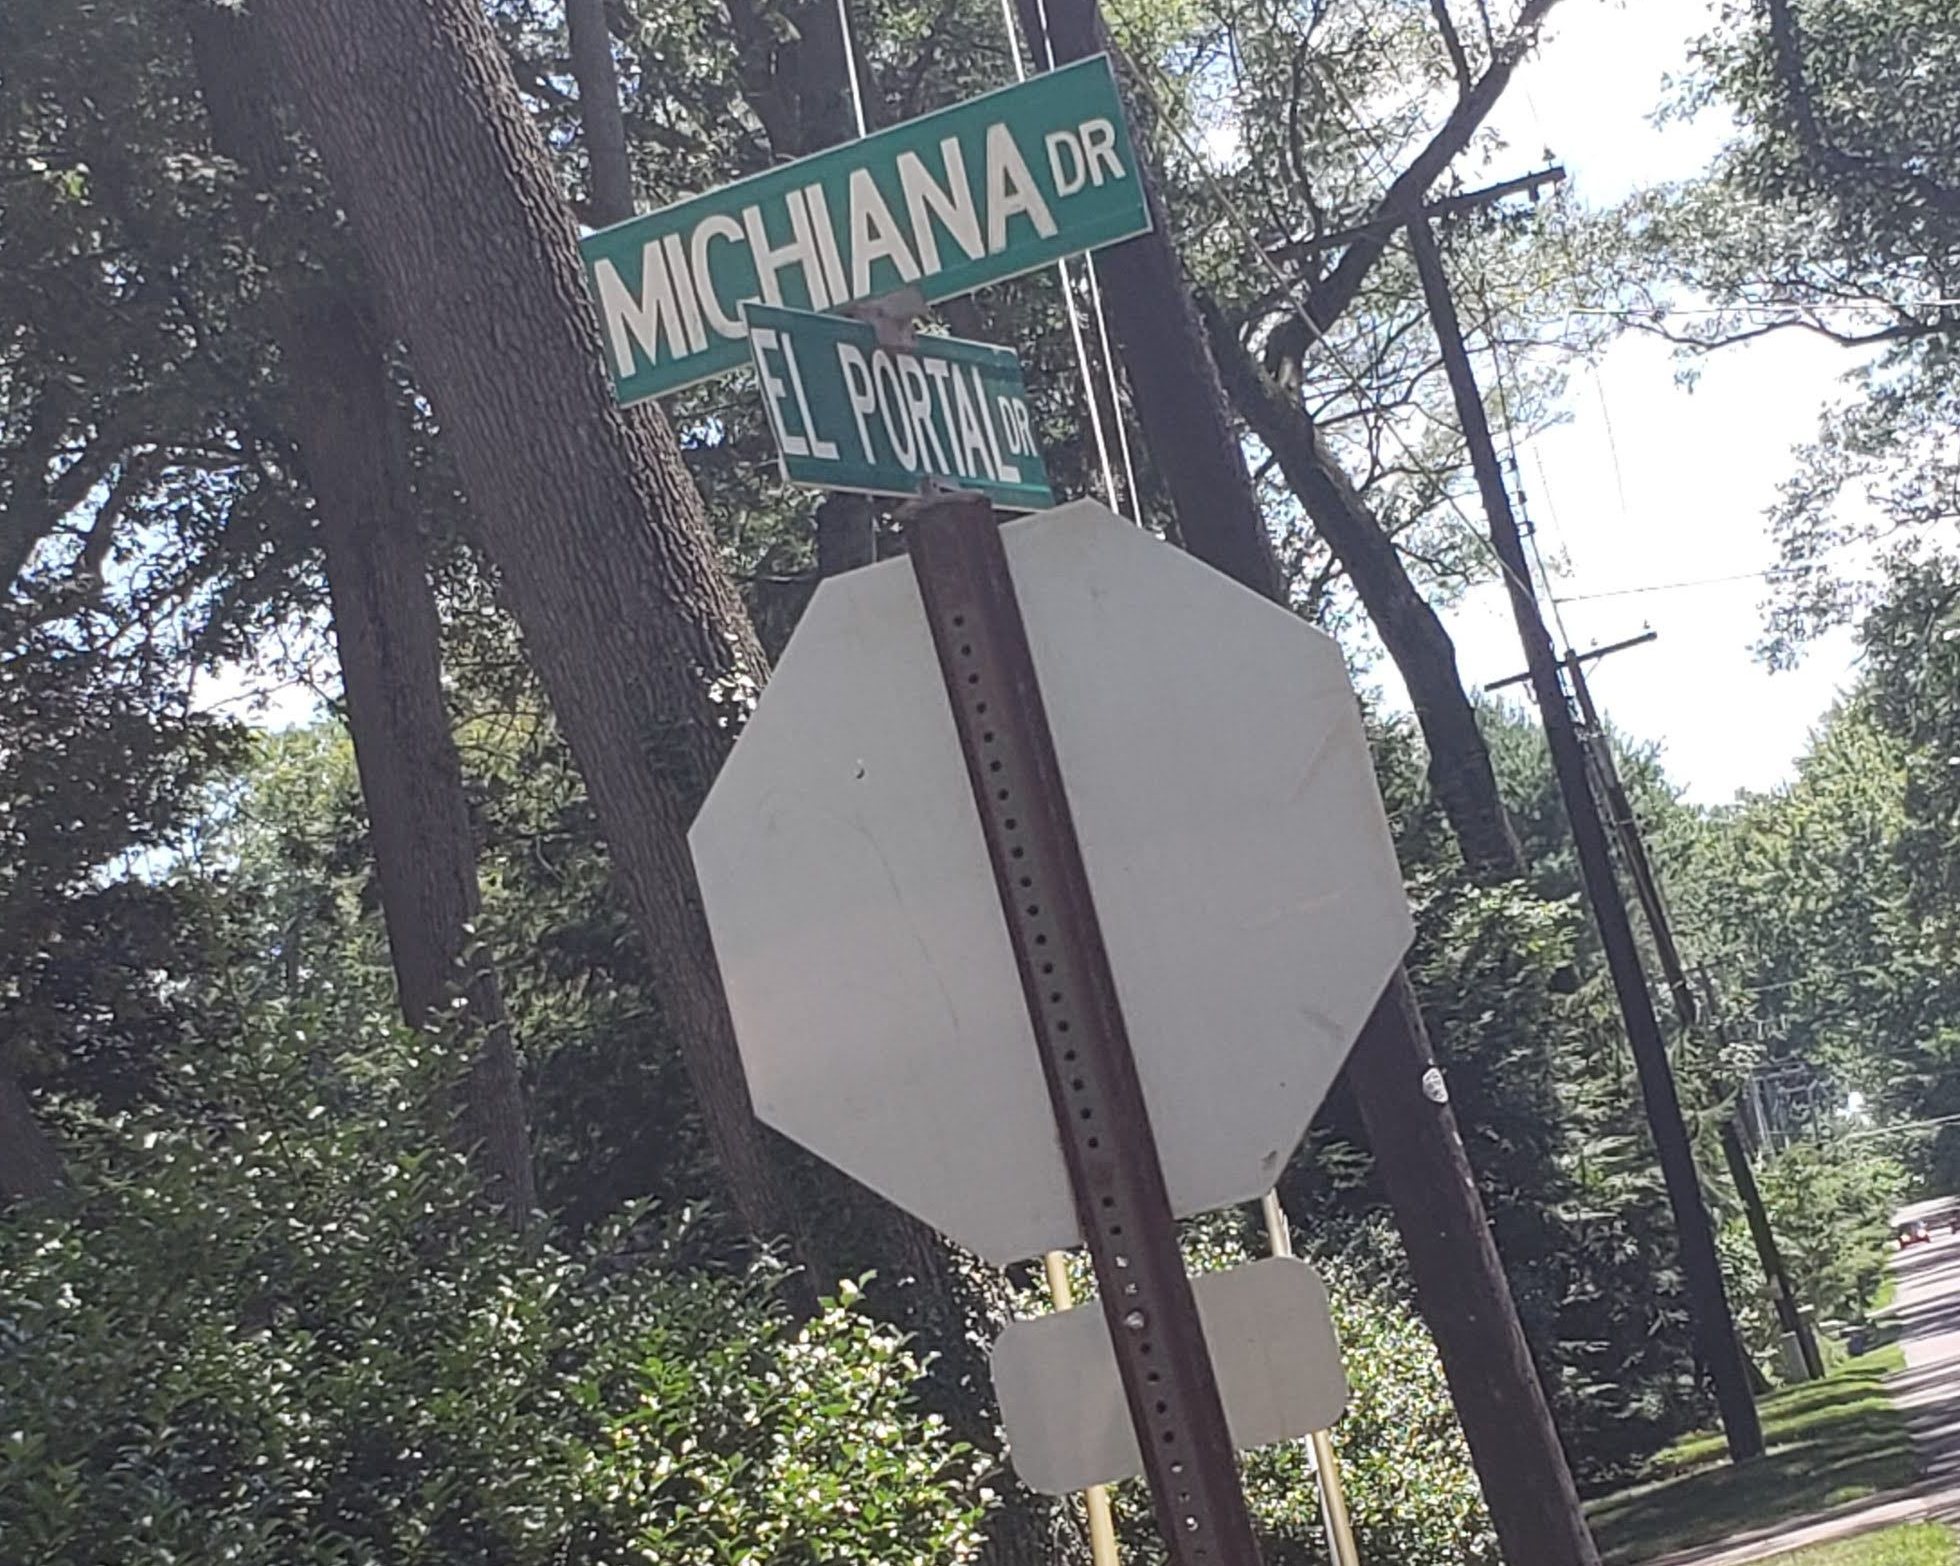 Michiana Drive they call it